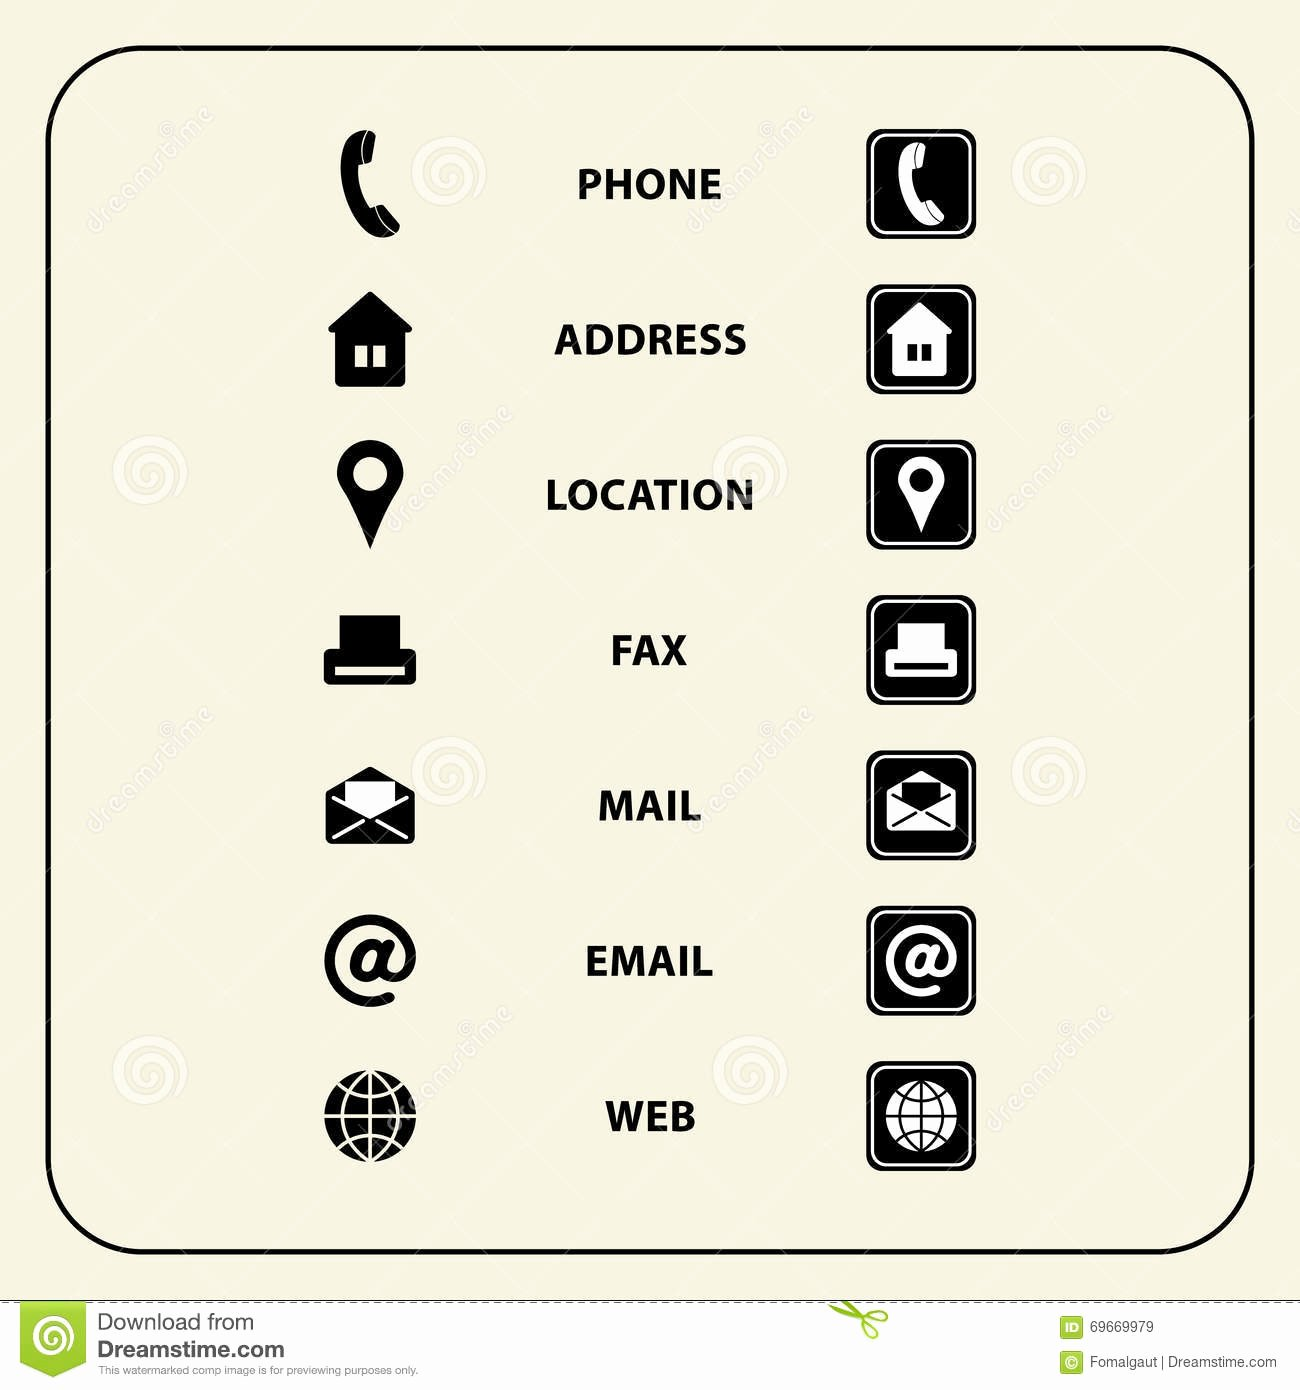 Icons for Business Cards Elegant Set Web Icons for Business Cards Finance and